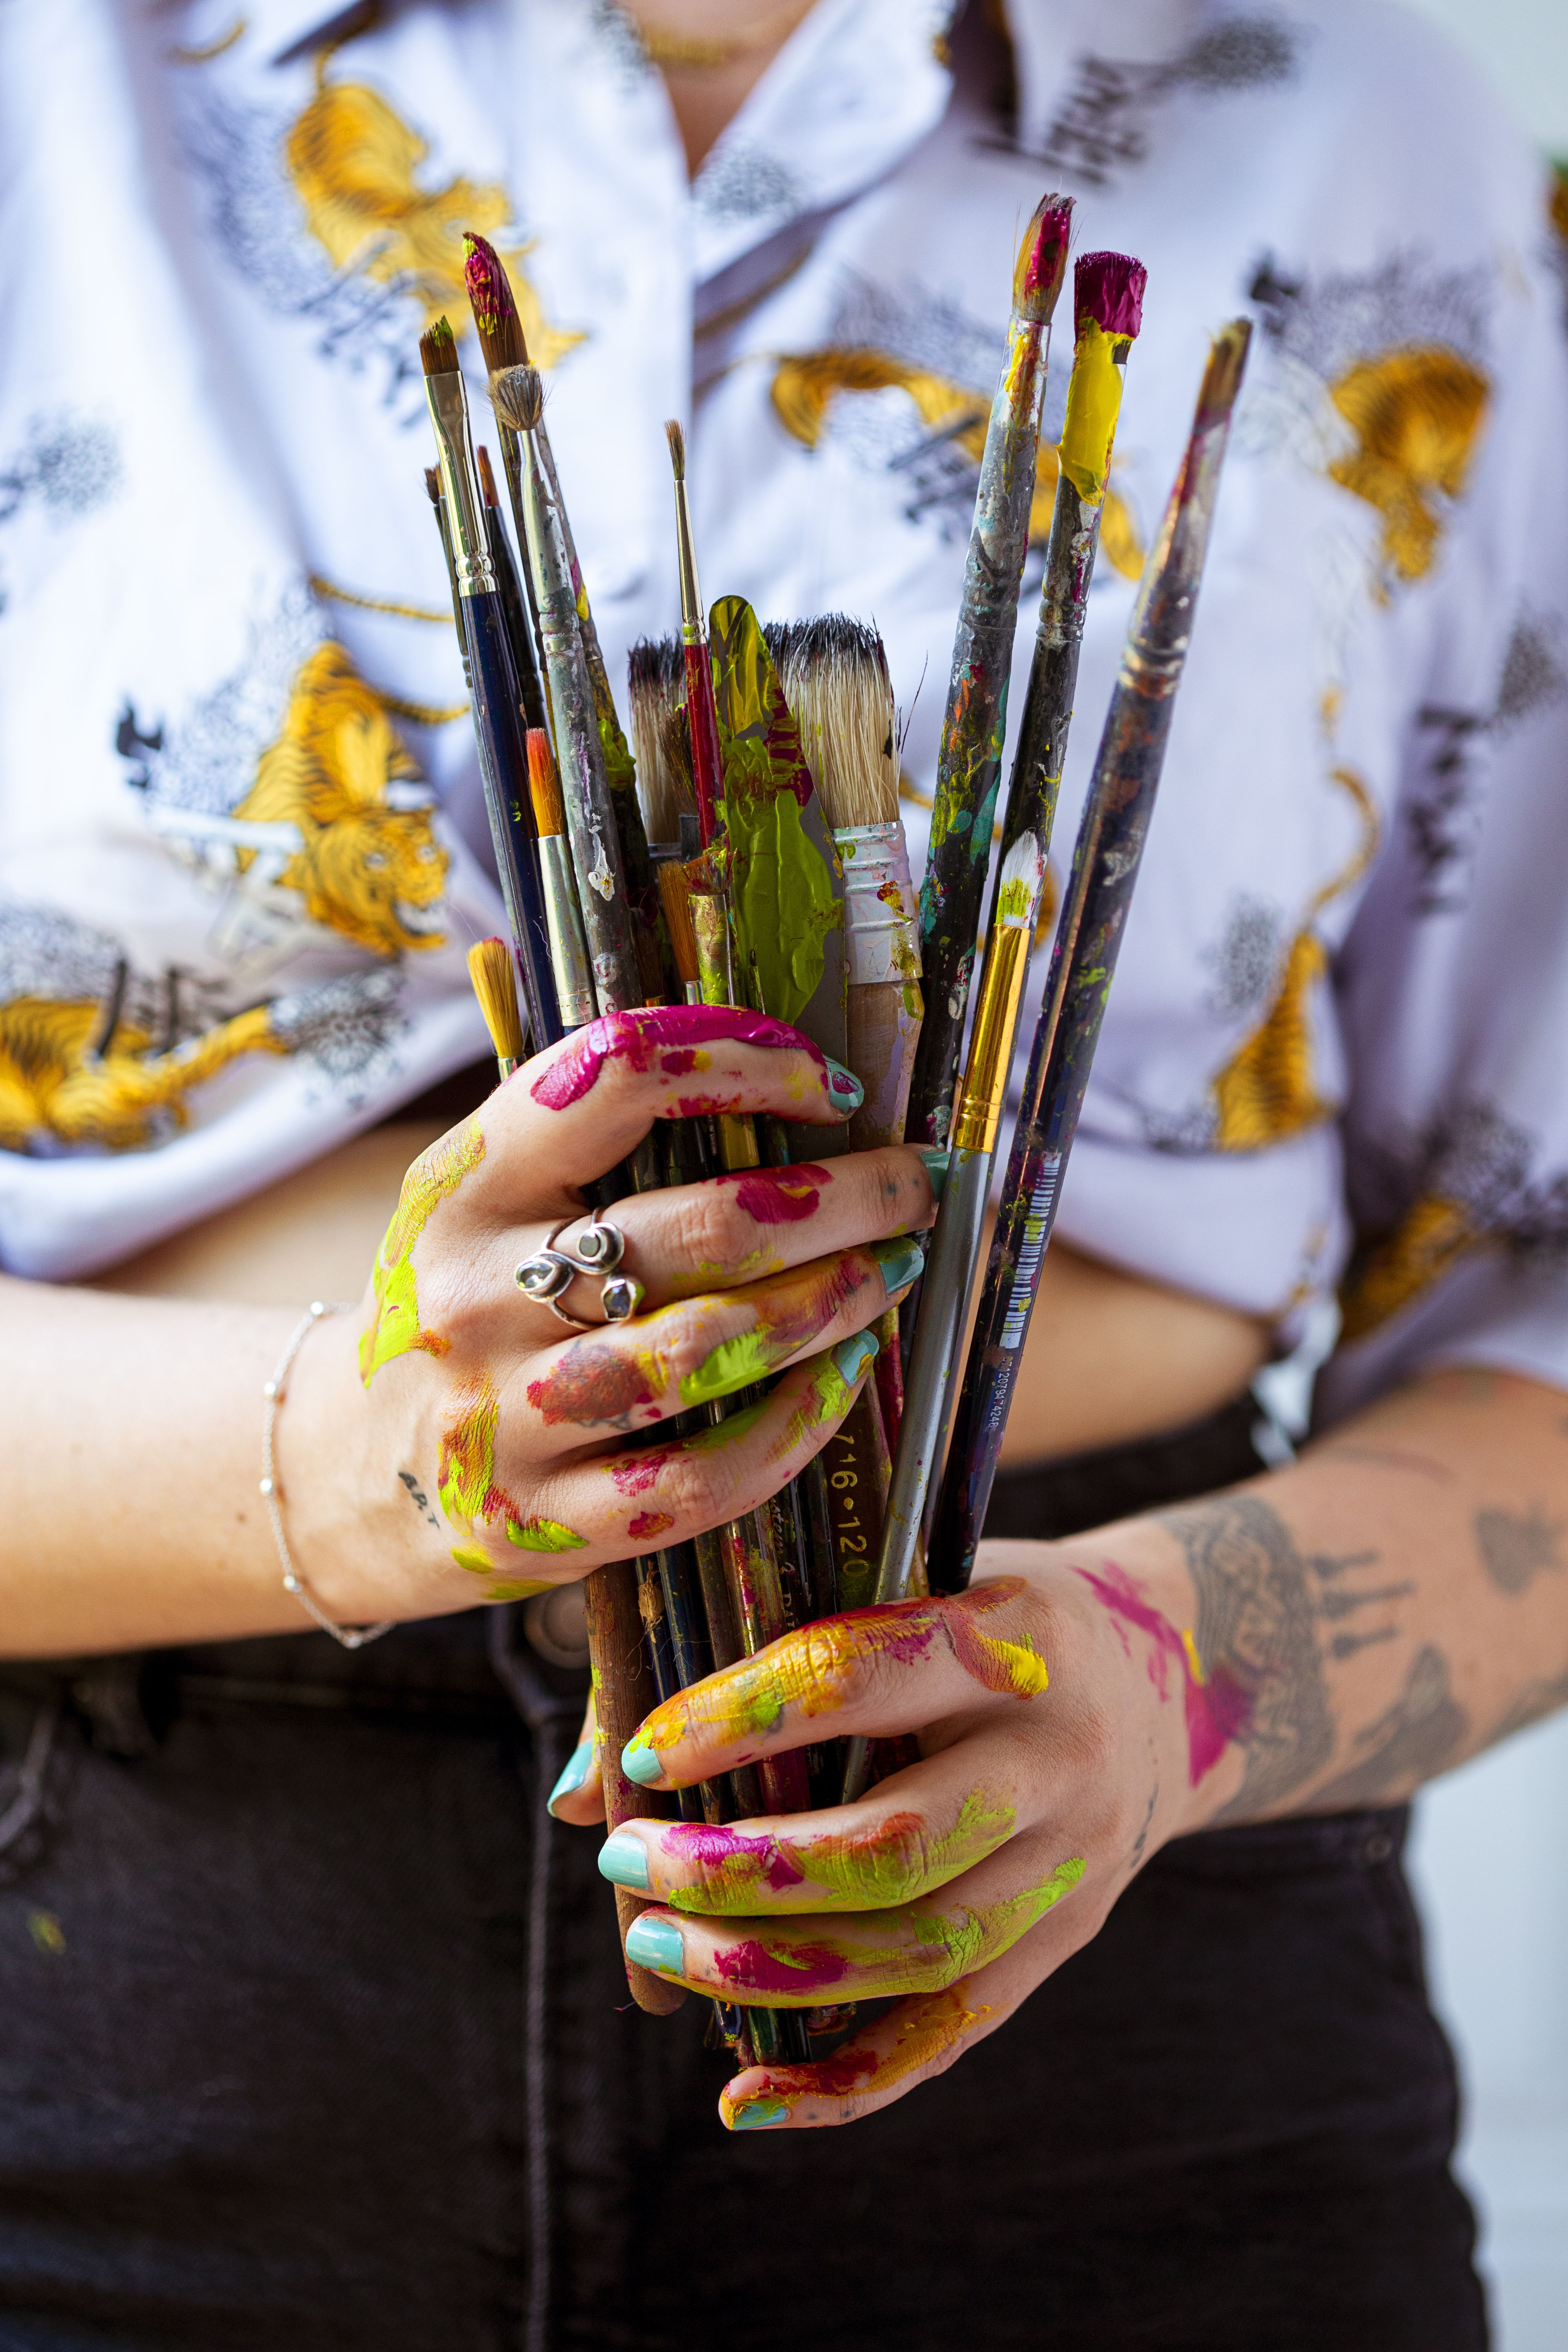 Doesnt everyone get this messy after a long day in the studio ?? #artstudio #painter #paintbrushes #femaleartist #acrylicpaints #mixedmedia #studiolife #art #artist #inspo #paint #colourpalette #colours #colors